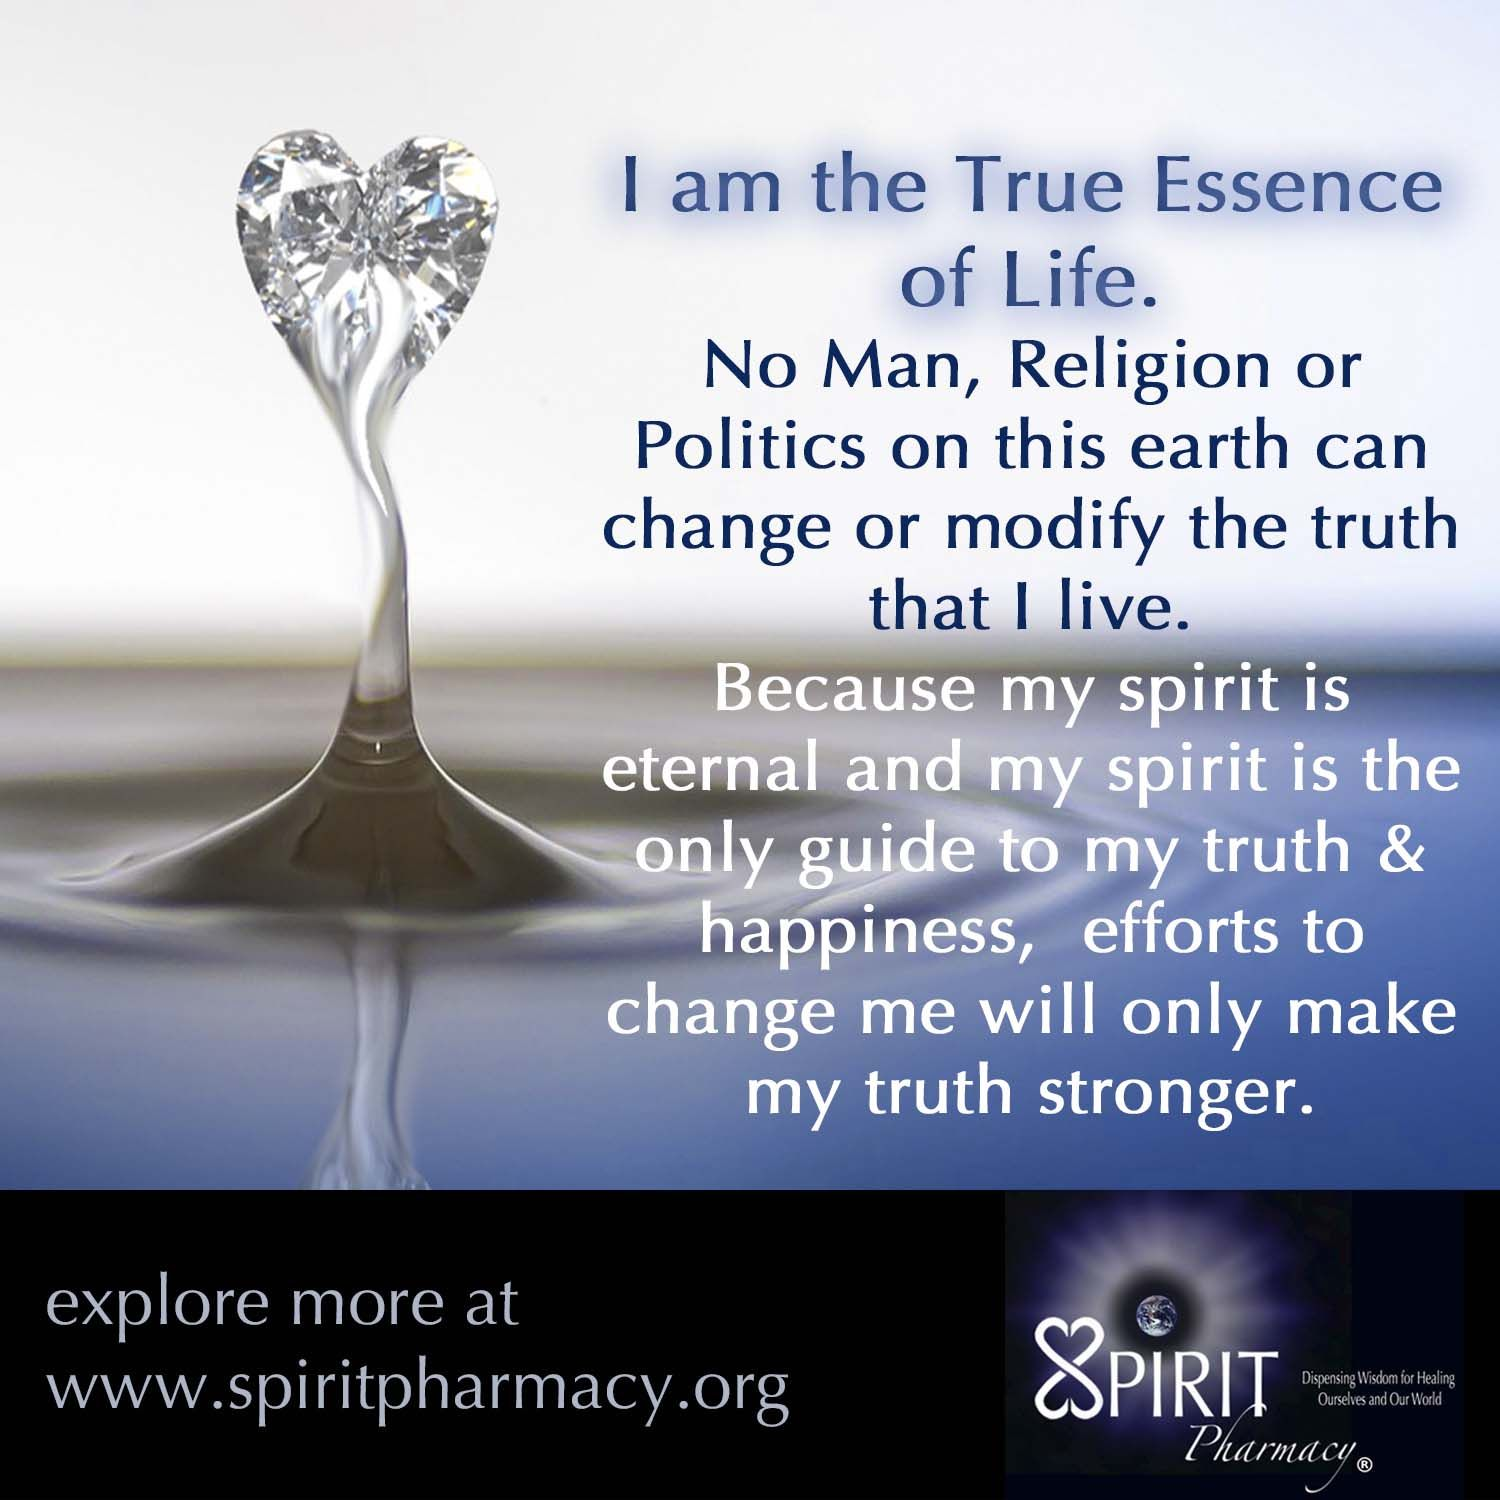 It is a monumental time in existence to realize our true nature.  Once one becomes aware of the spirit living within our physical bodies we know where our true sense of self really exists.  There is nothing that can change, shake or modify the spirit within us, it truly is eternal and it is ONE.